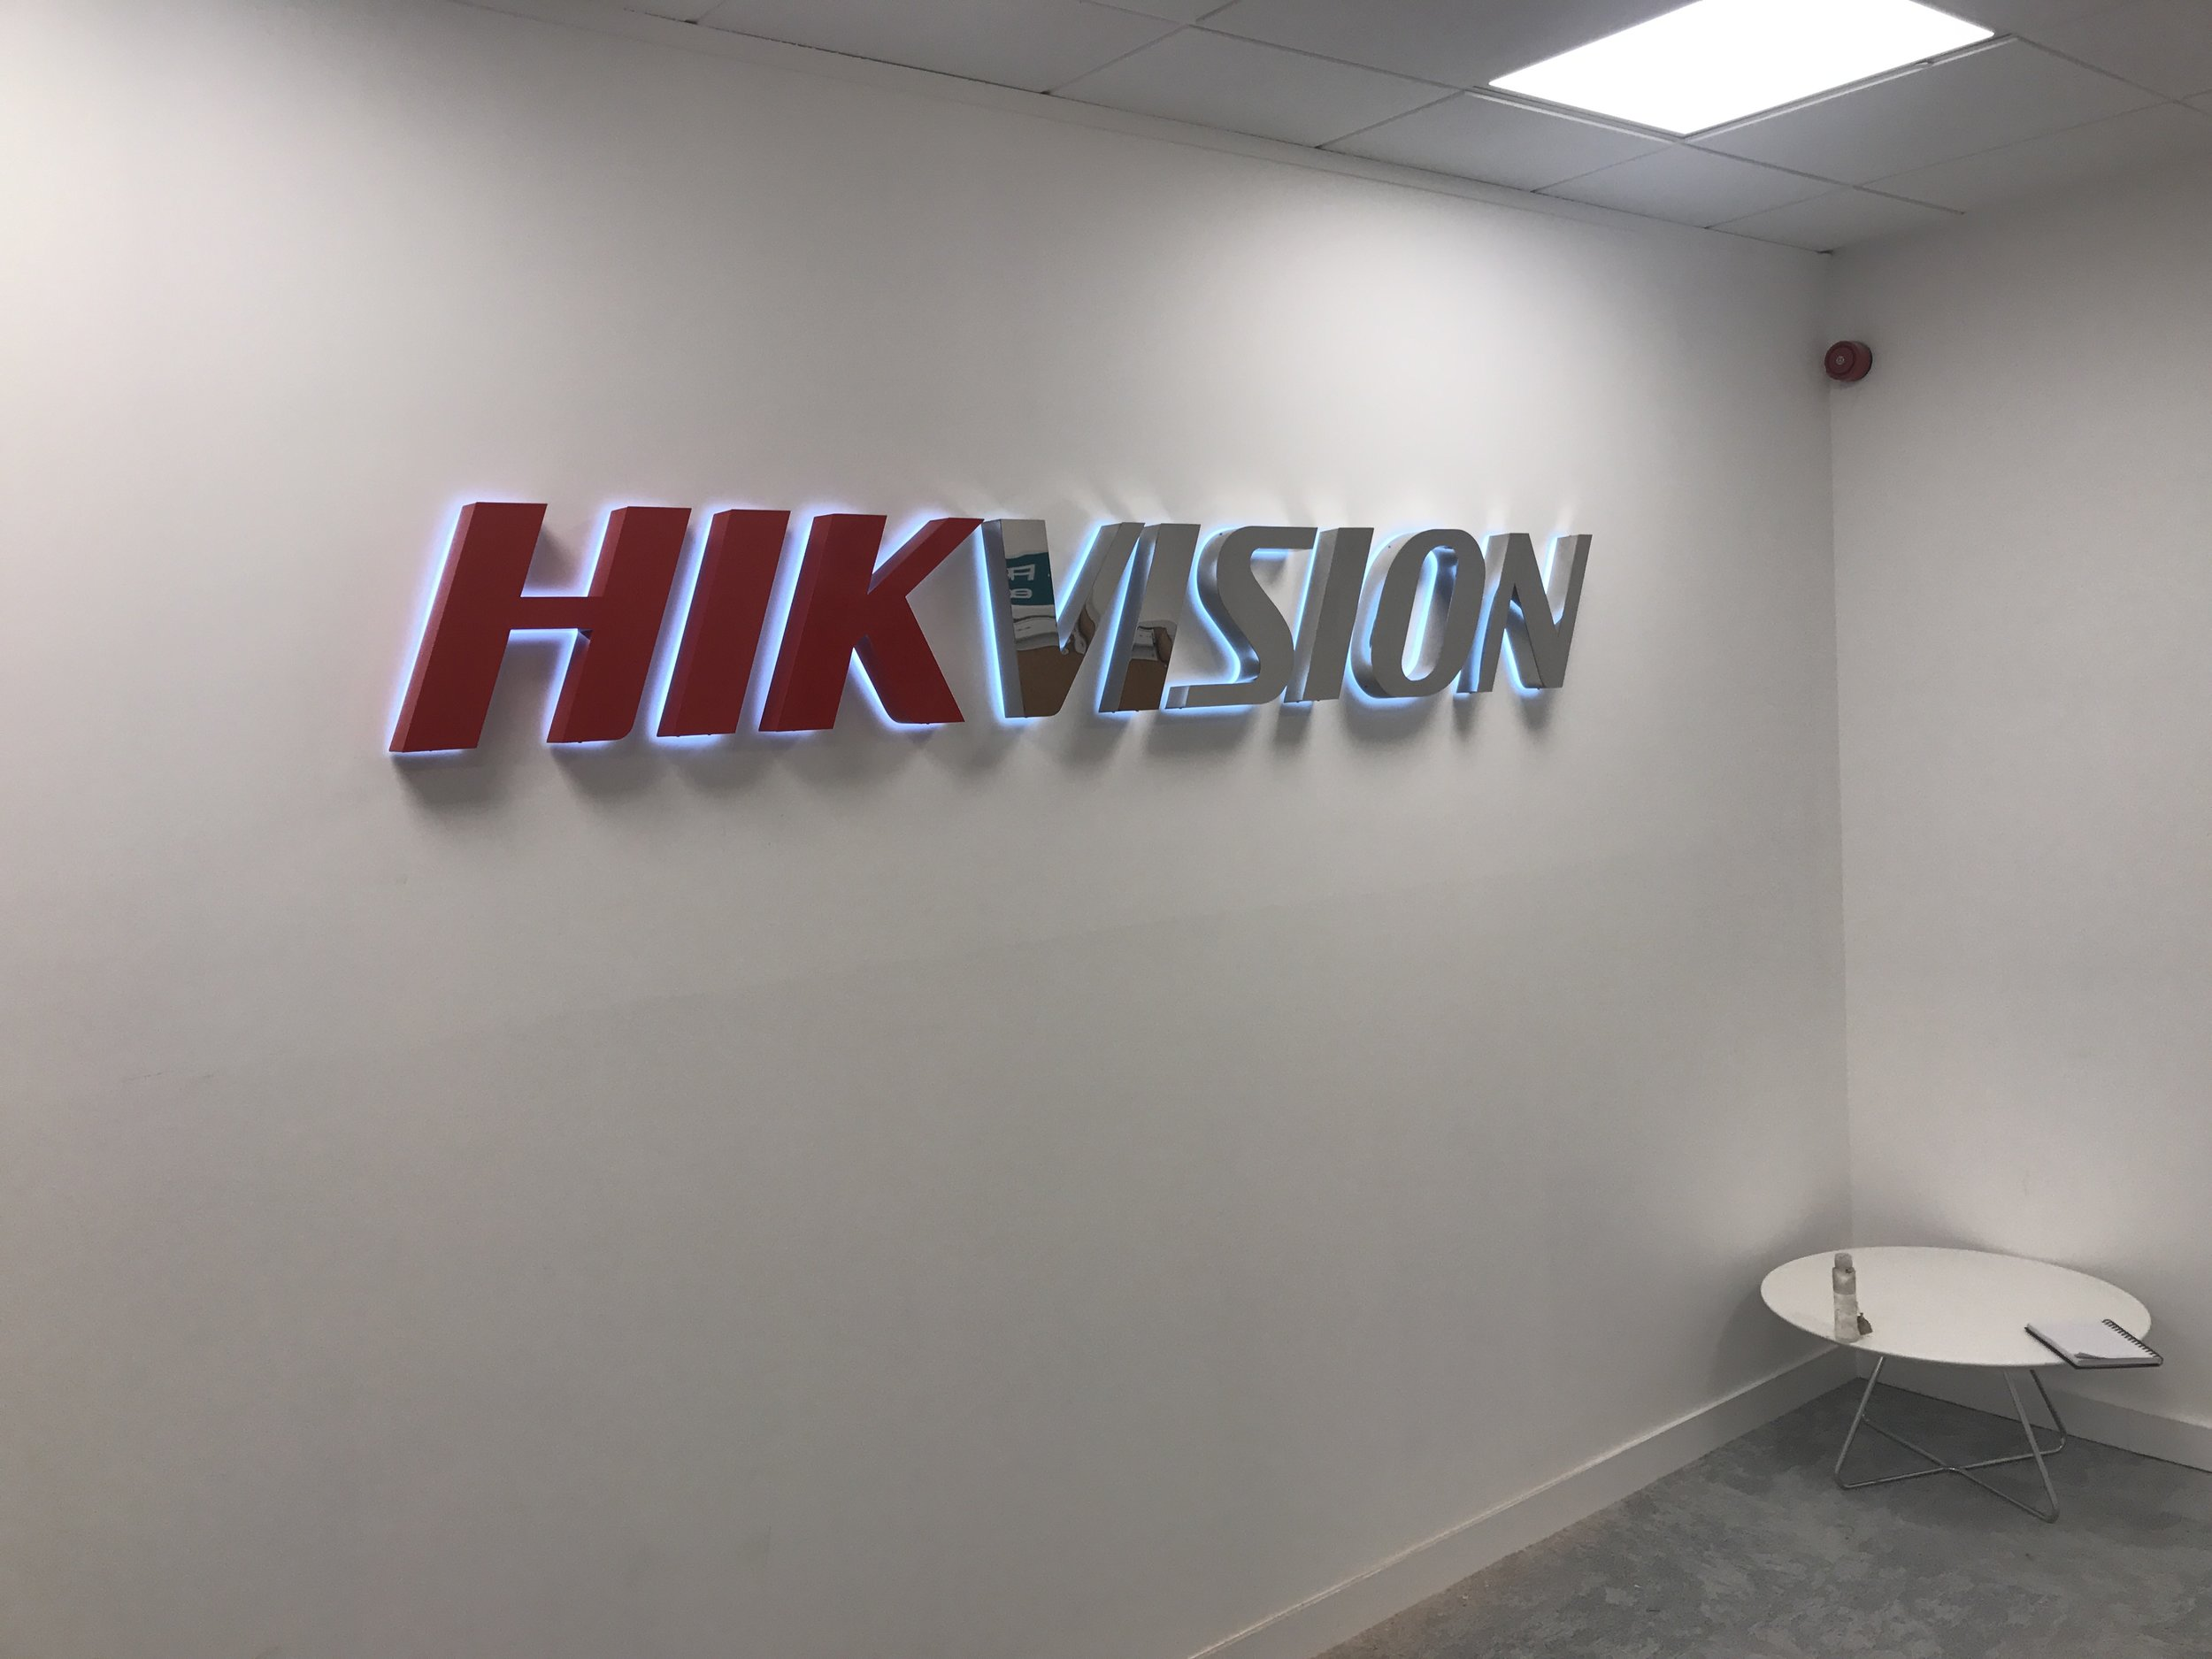 Built Up Halo Illuminated Letters.   Built up halo illuminated letters installed to an internal office space wall. The first half of the letters were powder coated a standard RAL colour for 'HIK' and the second half 'VISION' given a polished stainless steel finish.